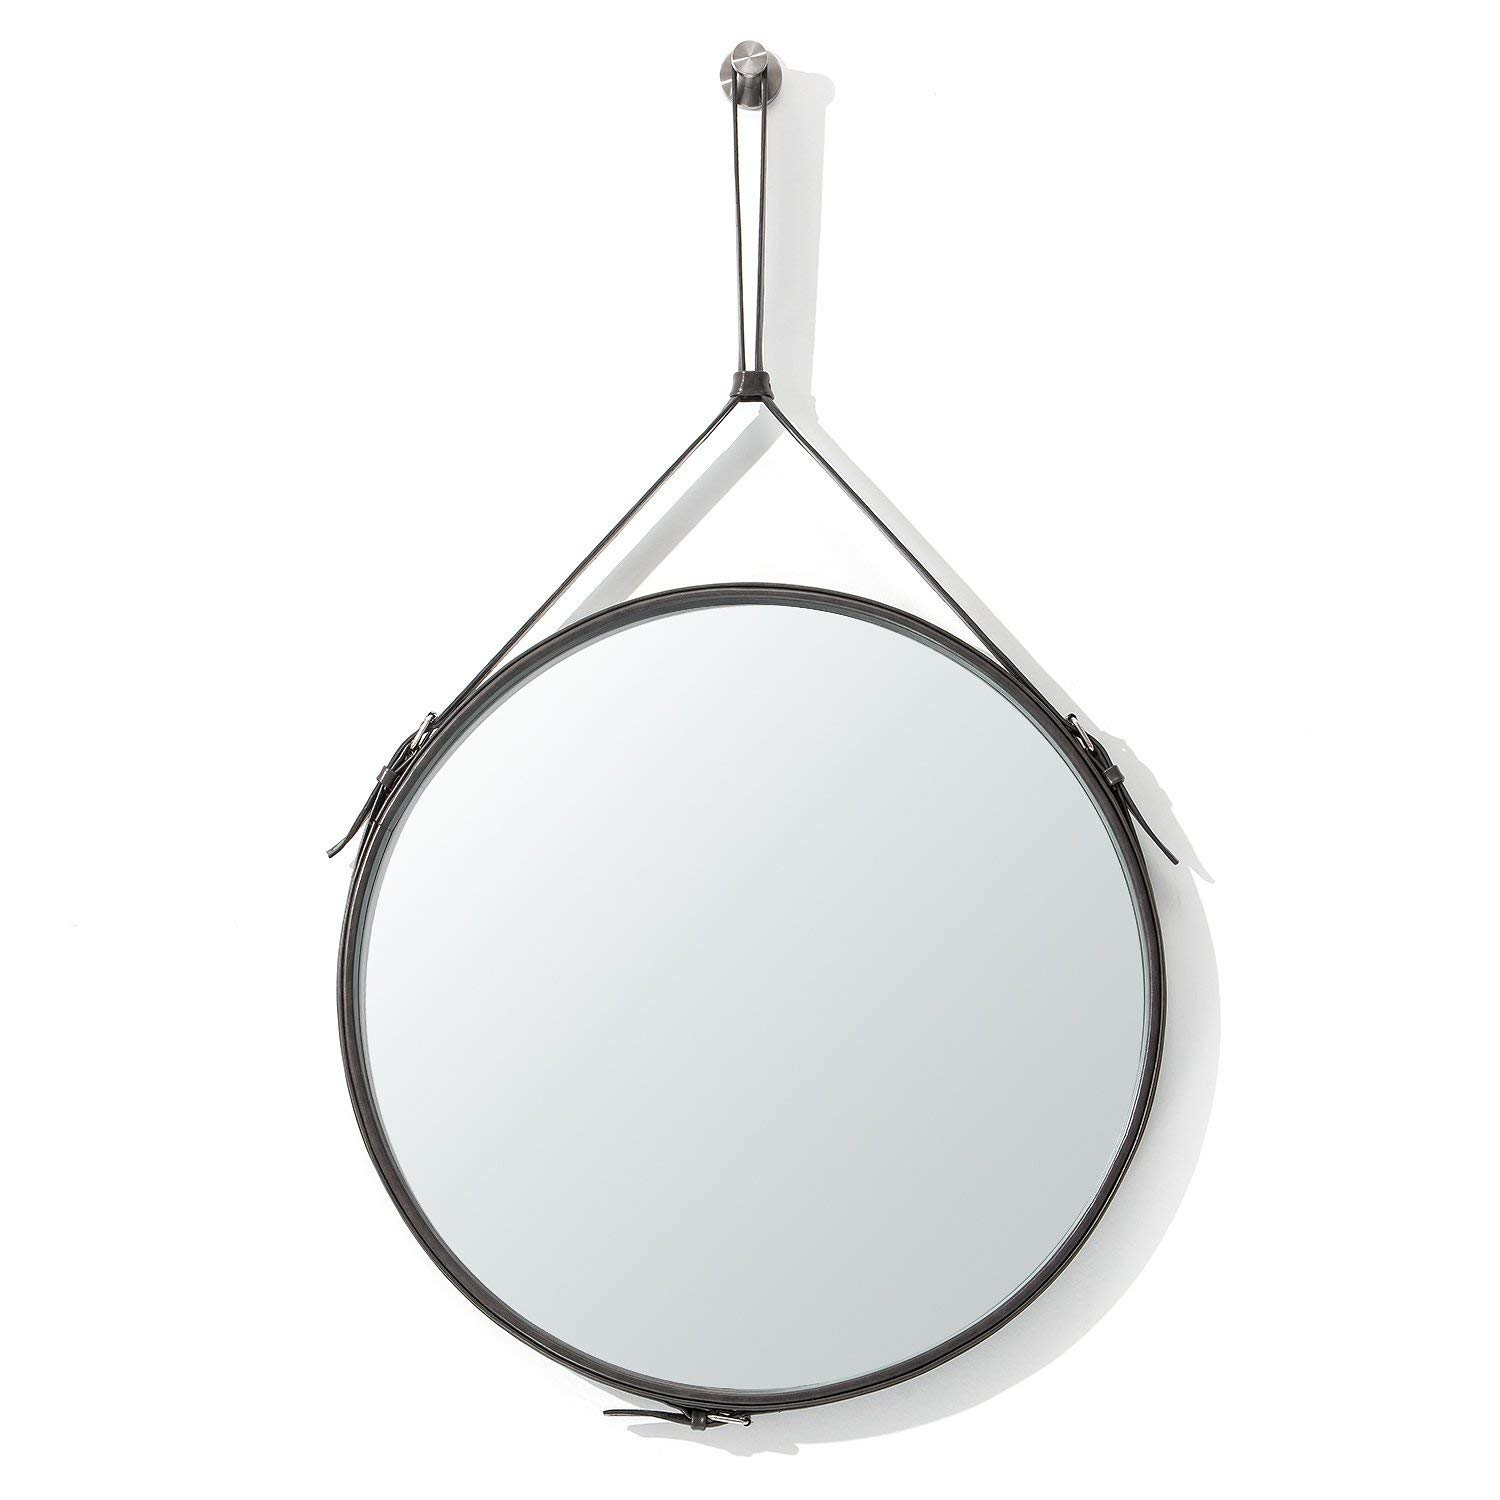 Buy Decorative Wall Mirror Round Shape Kentwood Collection pertaining to Kentwood Round Wall Mirrors (Image 4 of 30)